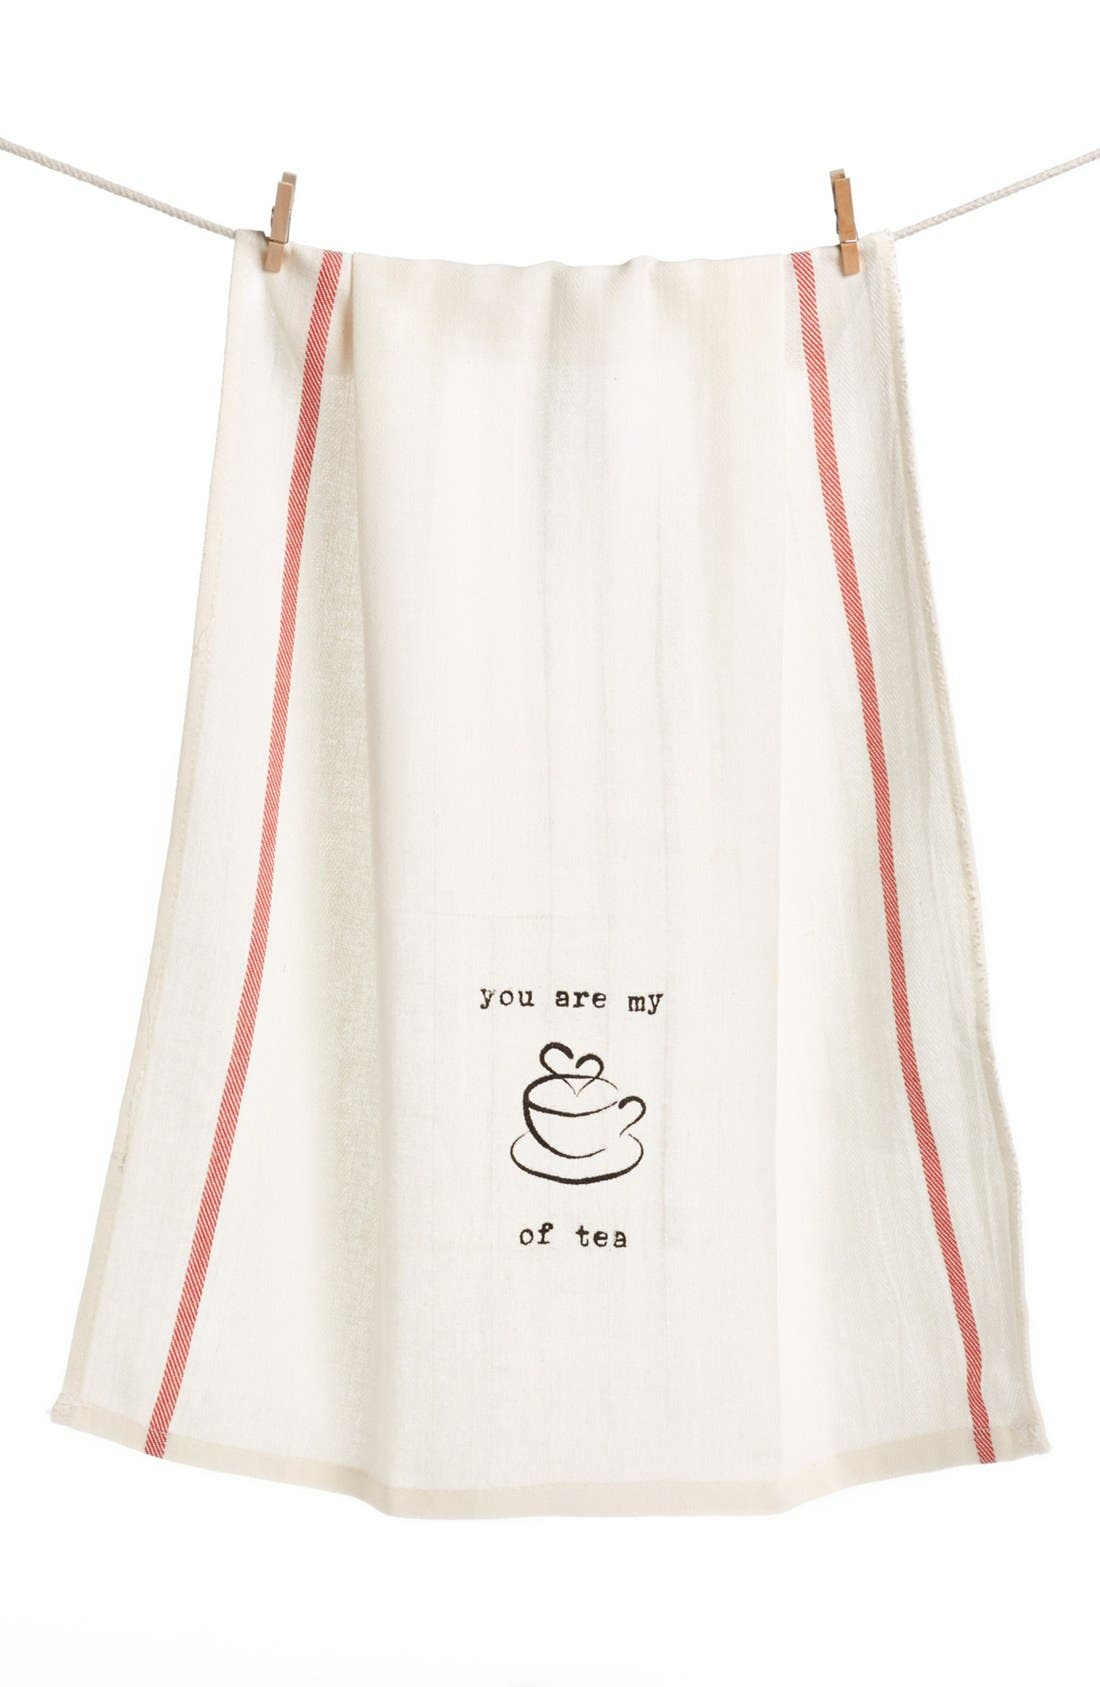 Main Image - Second Nature by Hand 'You Are My Cup of Tea' Dish Towel